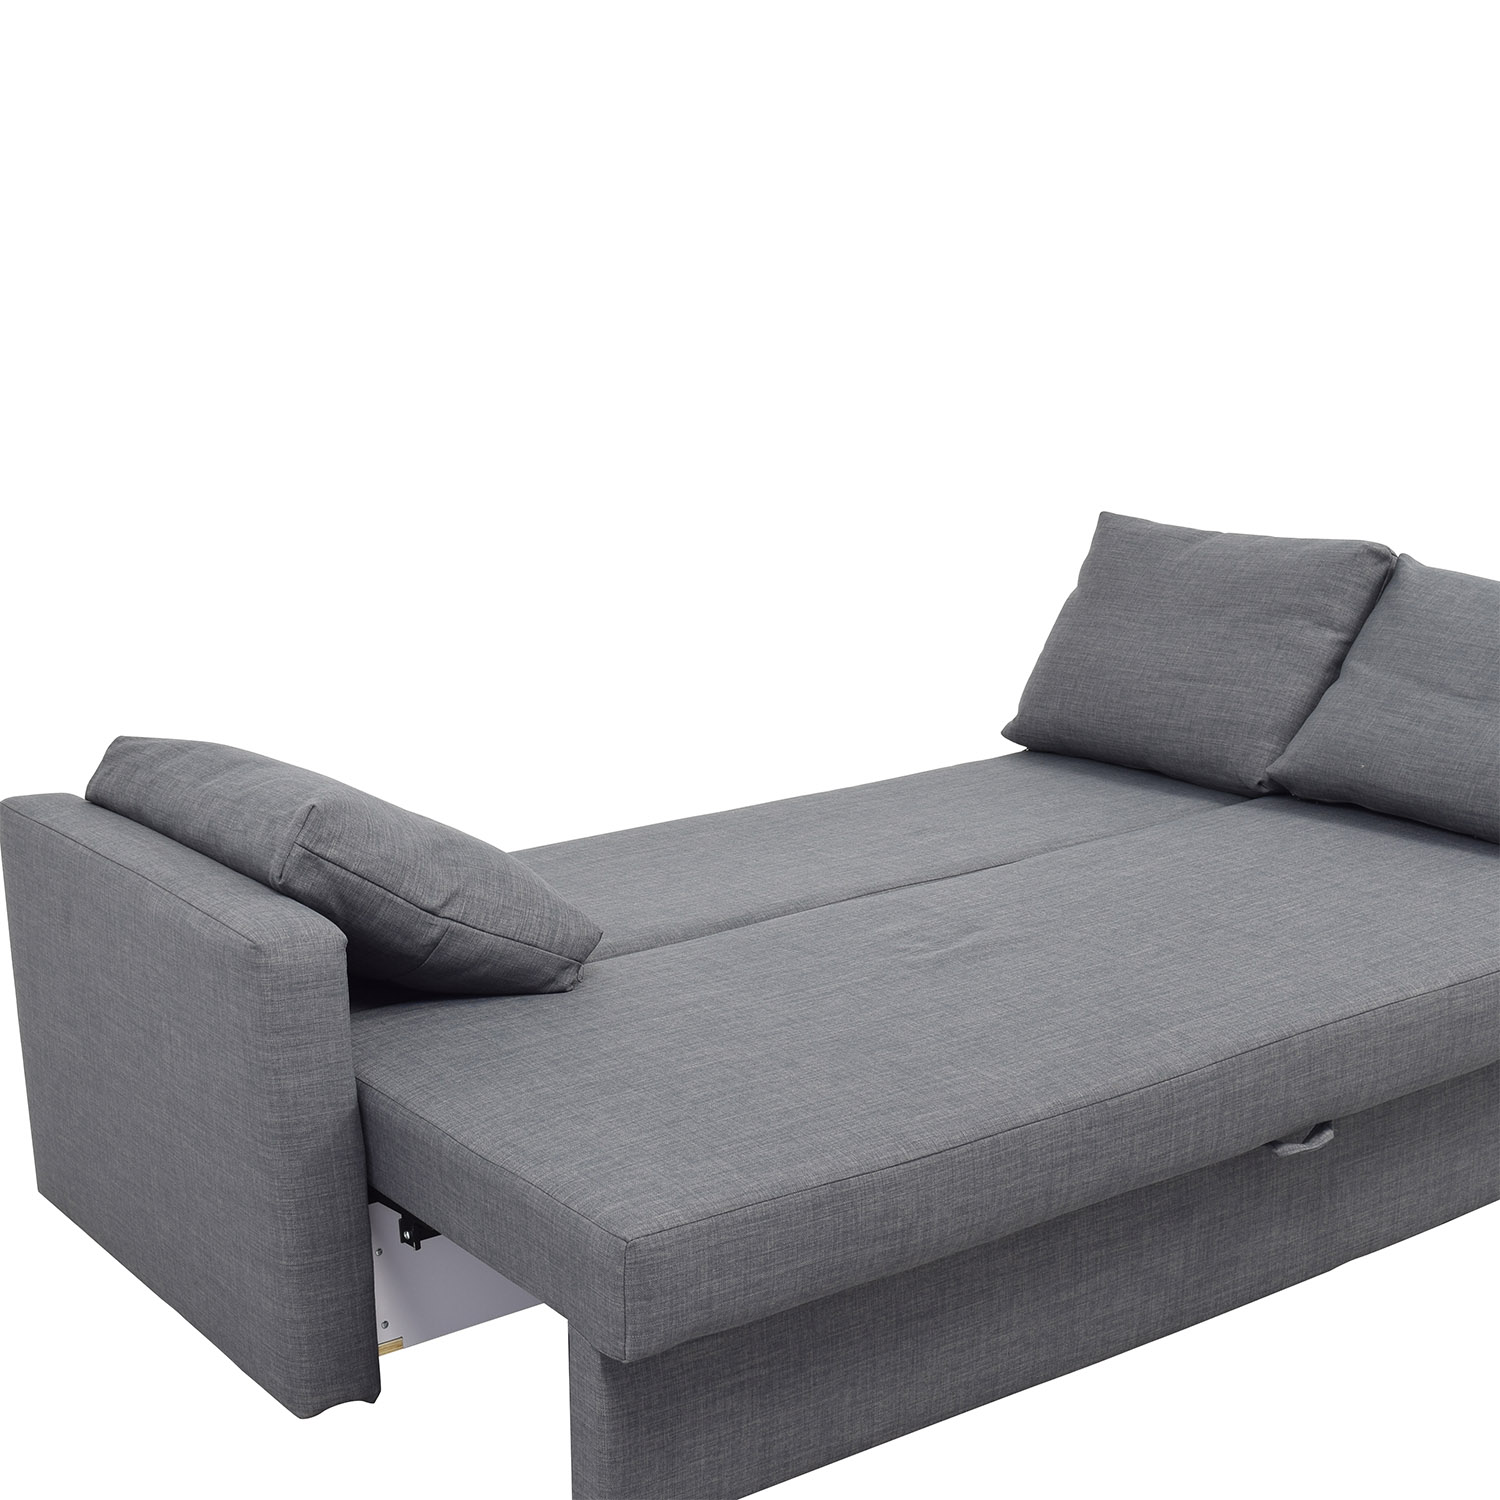 32 off ikea ikea friheten grey sleeper sofa sofas for Ikea gray sofa